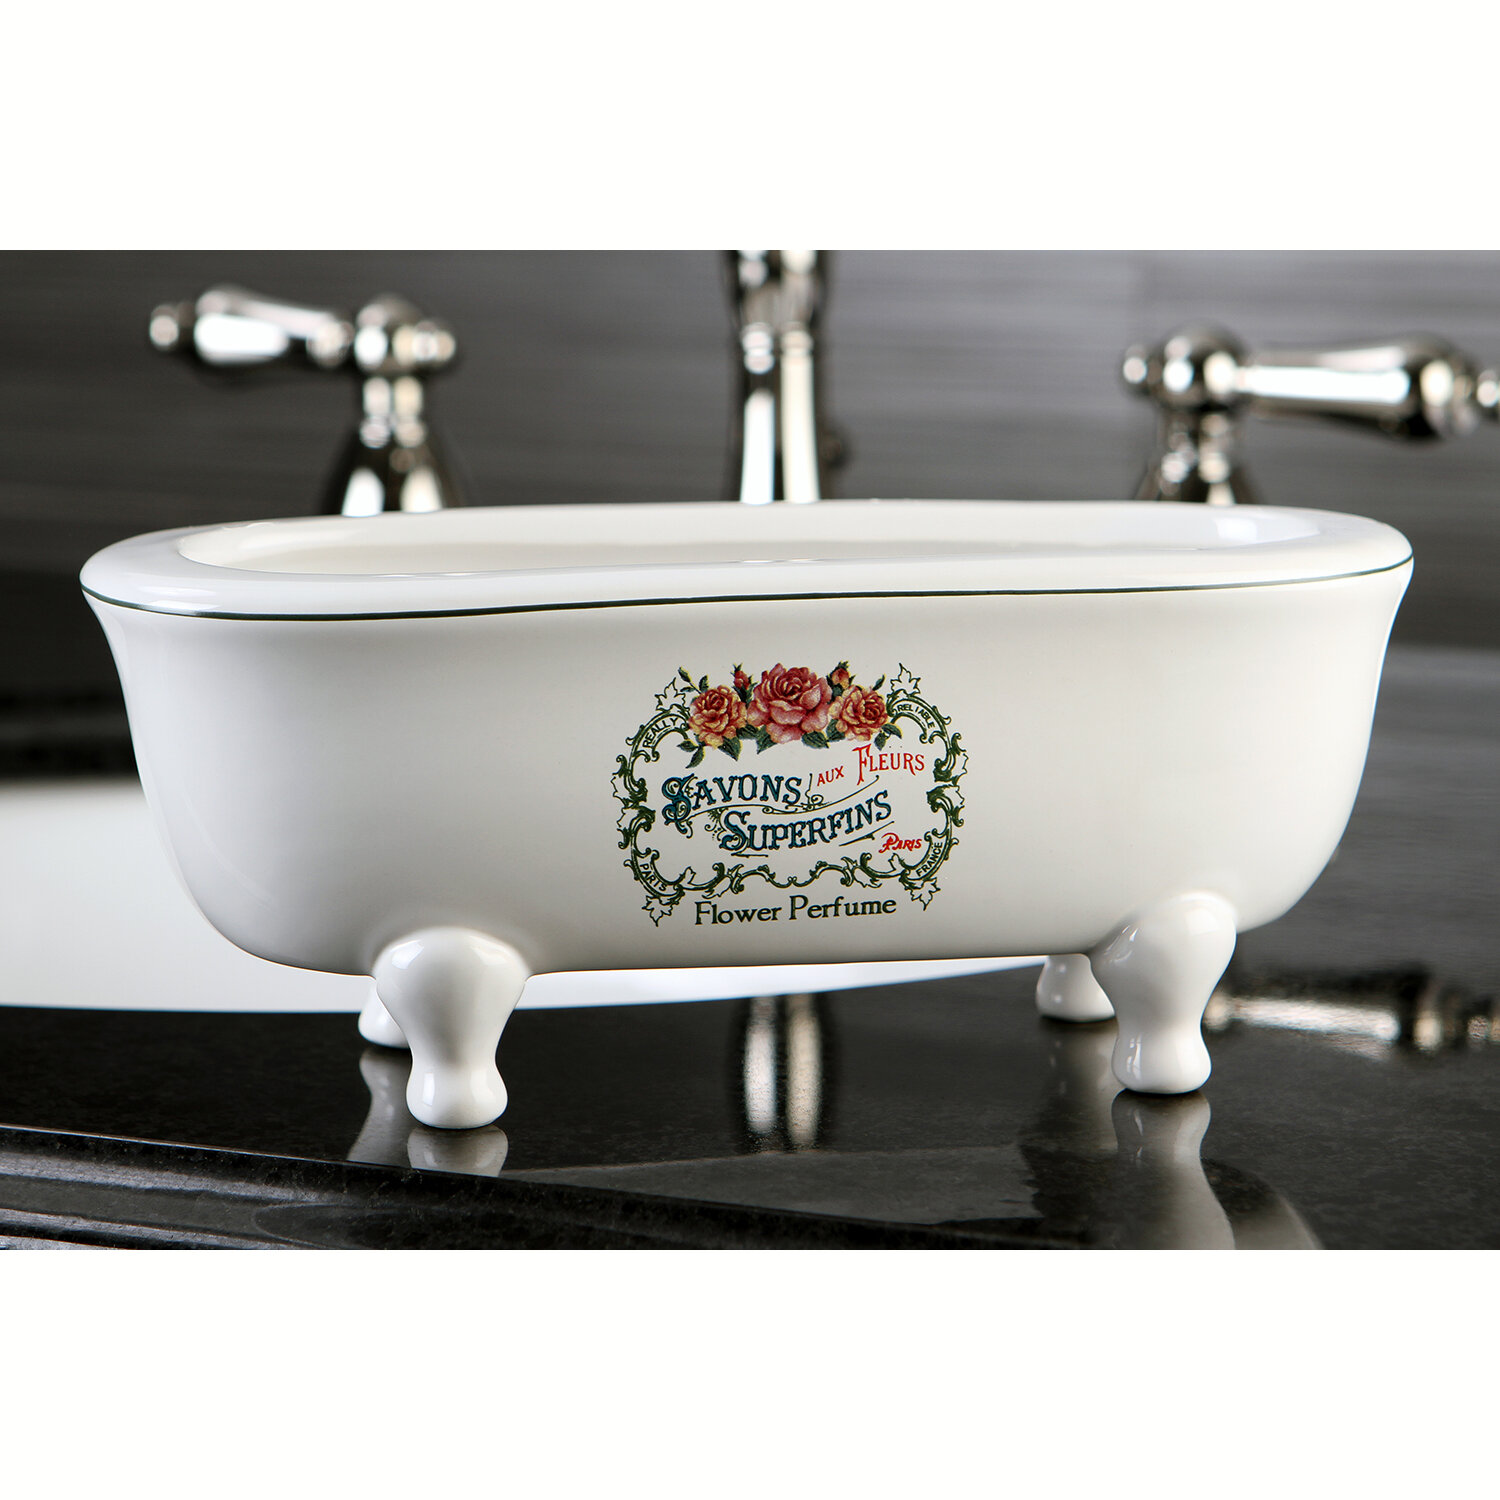 Kingston Brass Savons Superfins Aqua Eden Decorative Mini Bathtub ...